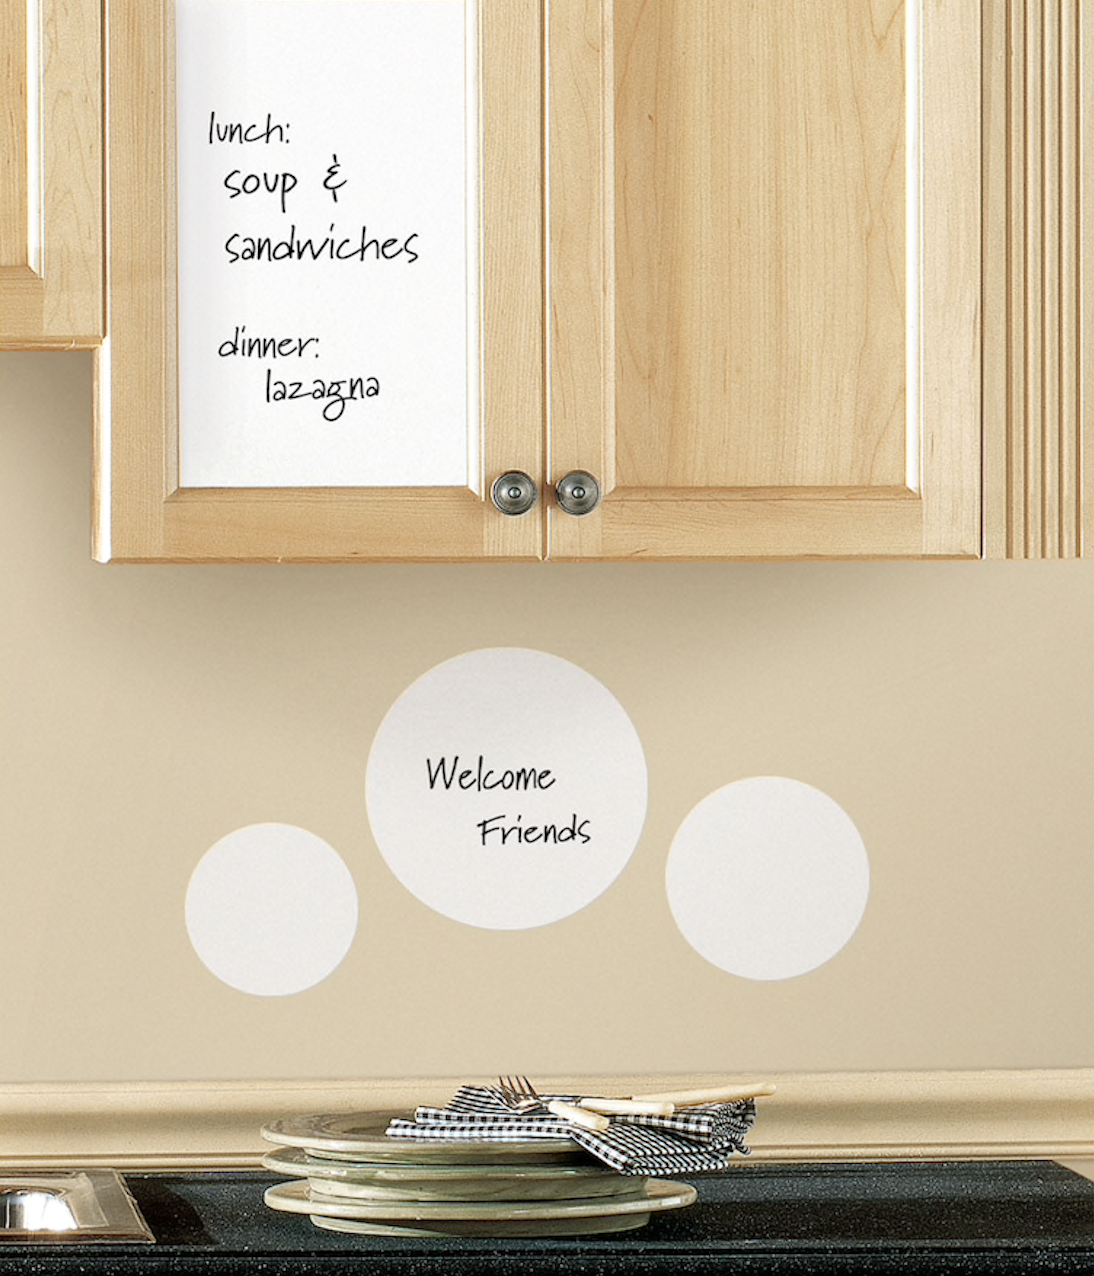 Pantry Organization - Reminder Stickers